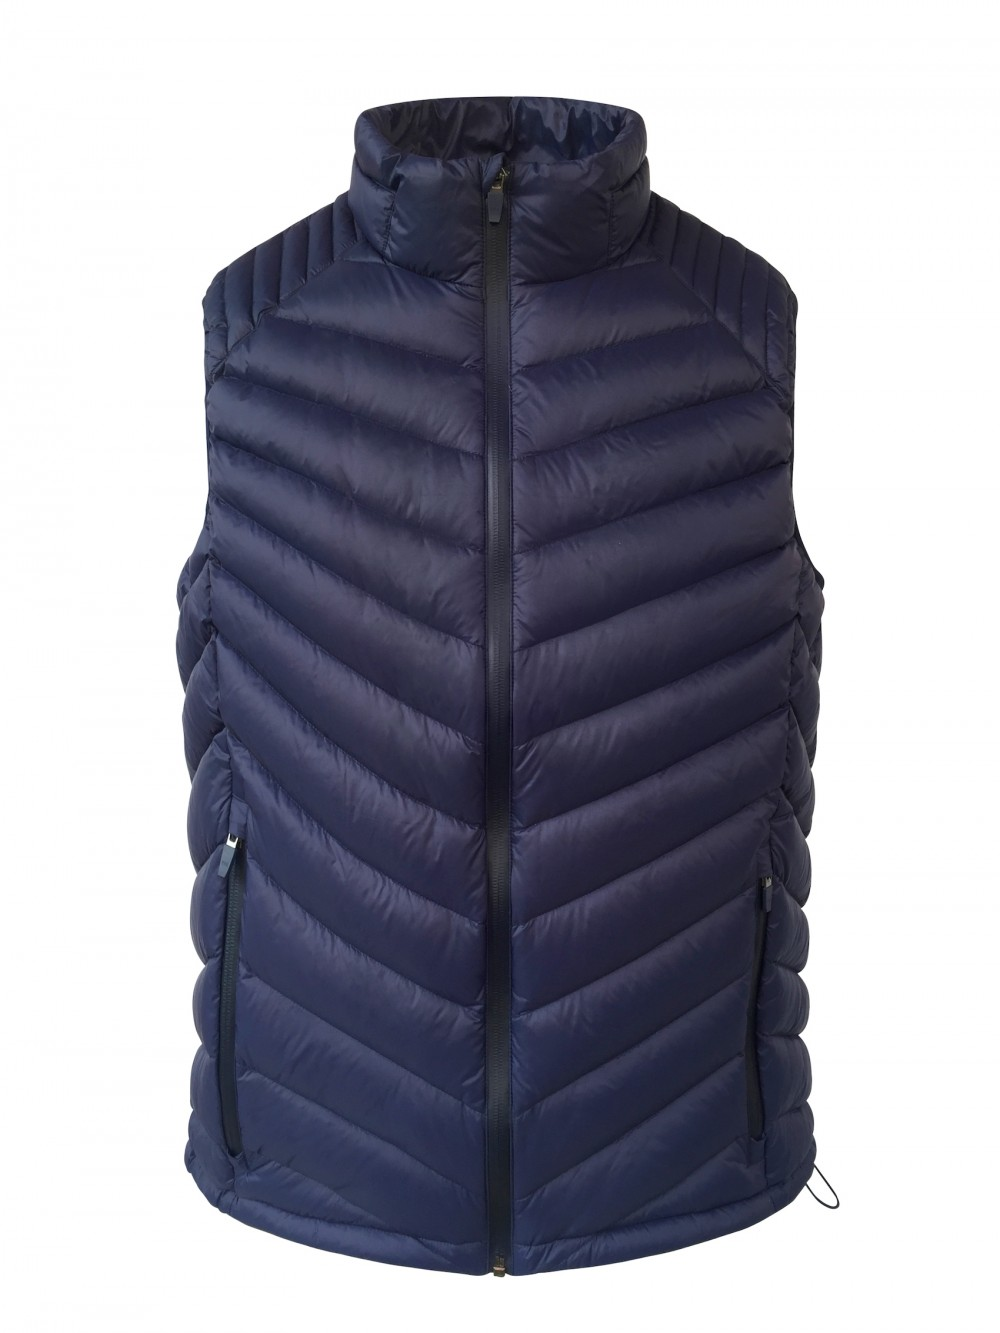 Mens Down Vest SENZA  navy